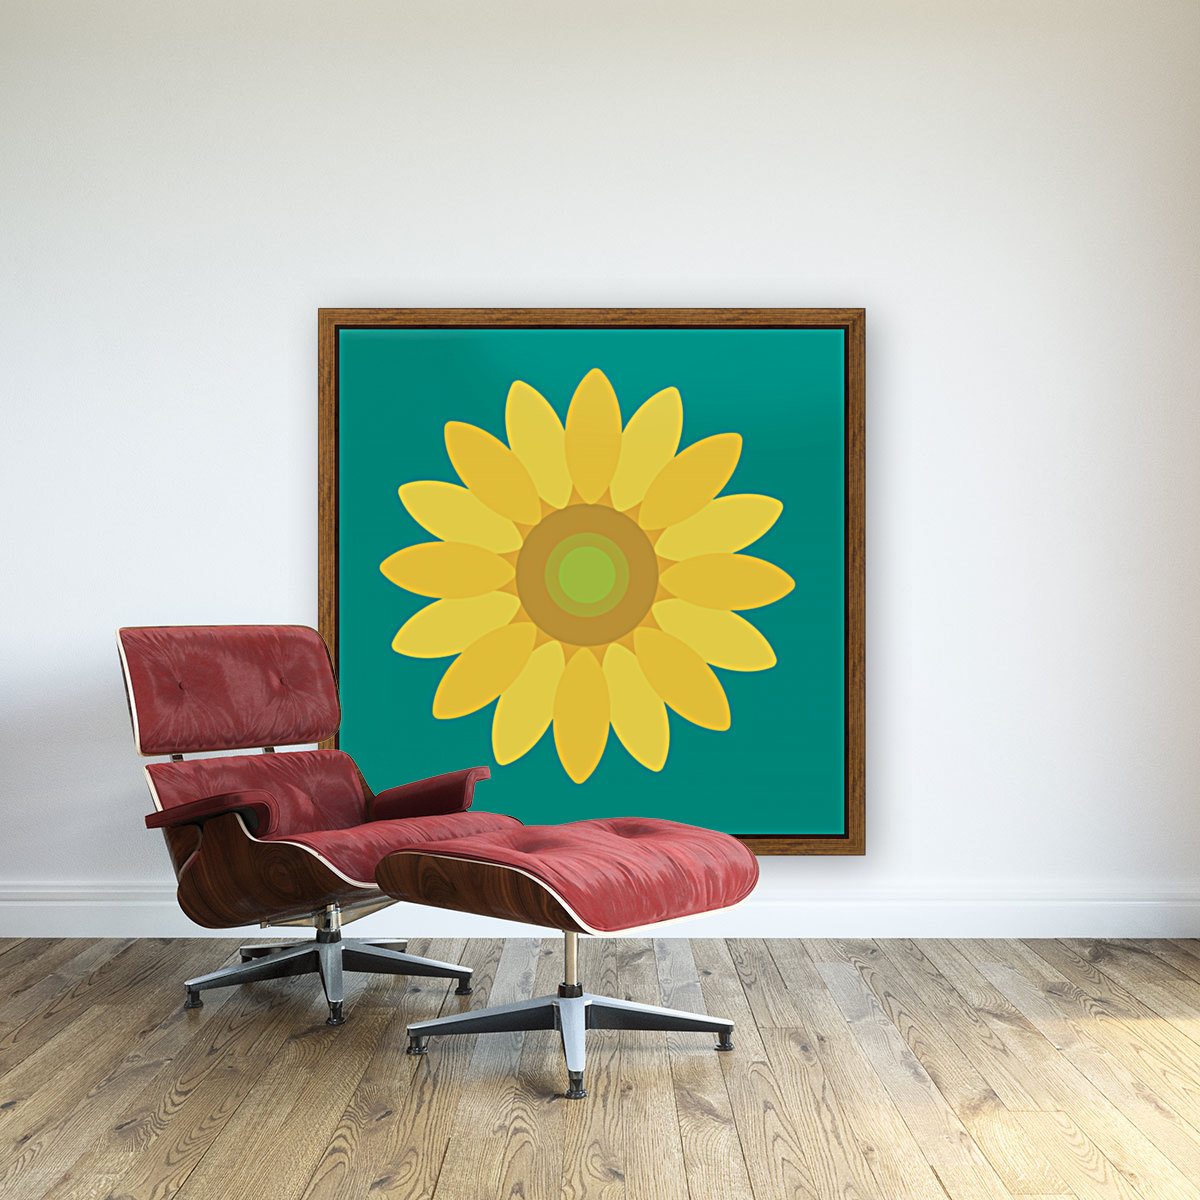 Sunflower (15)_1559876665.7687  Art